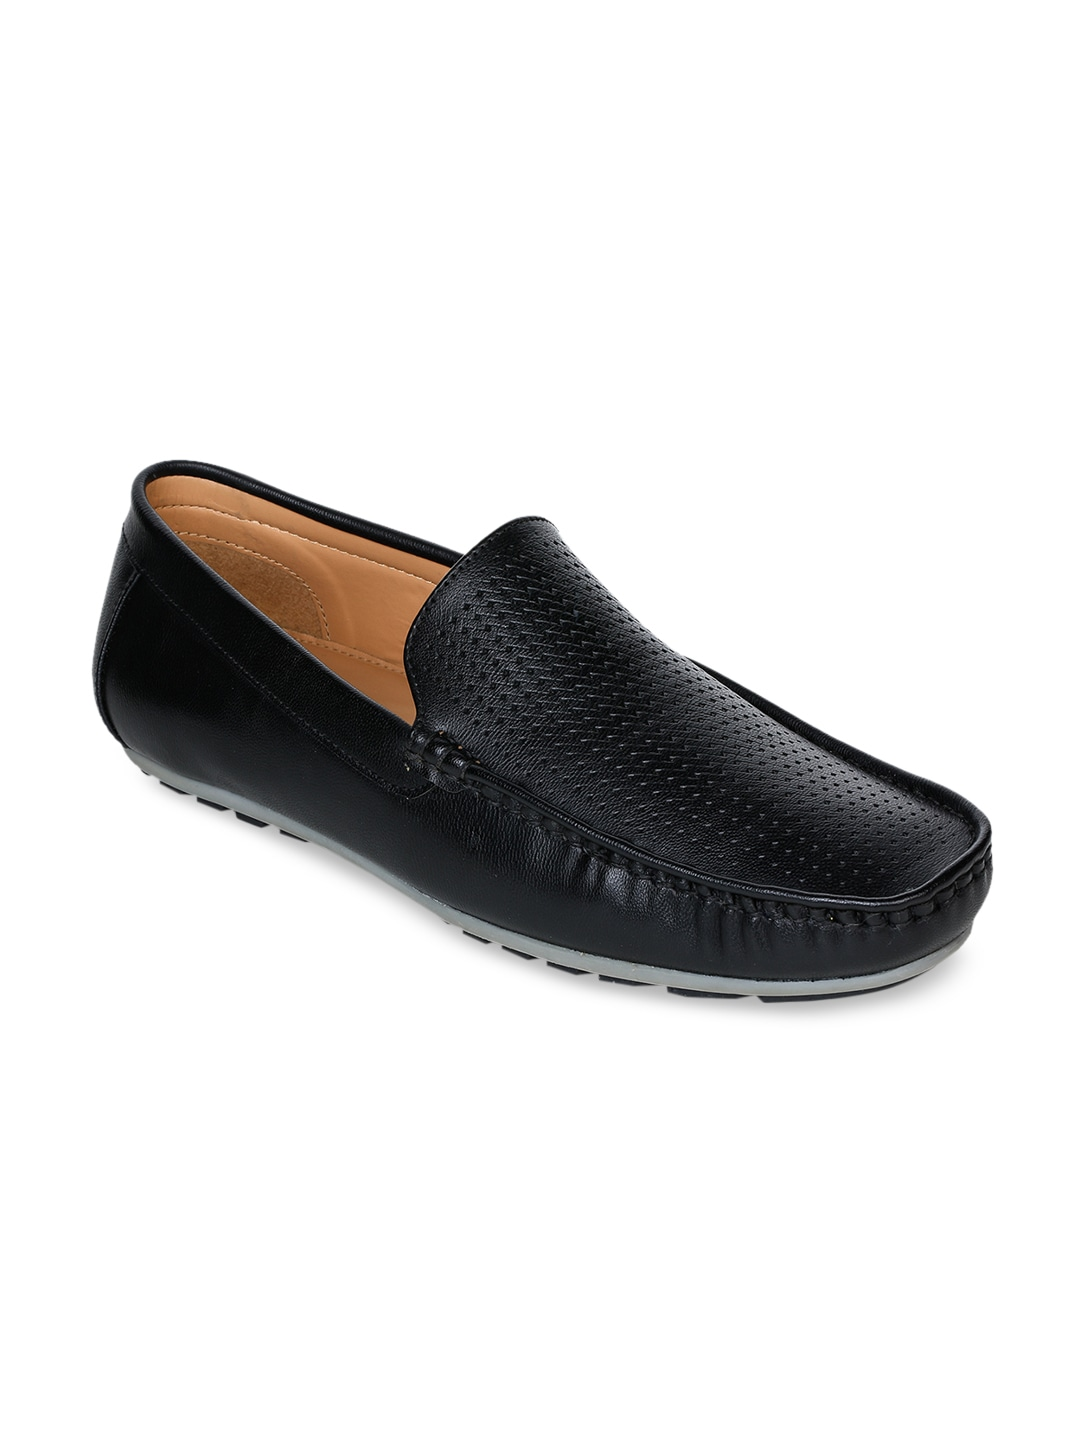 Black Perforations Leather Loafers